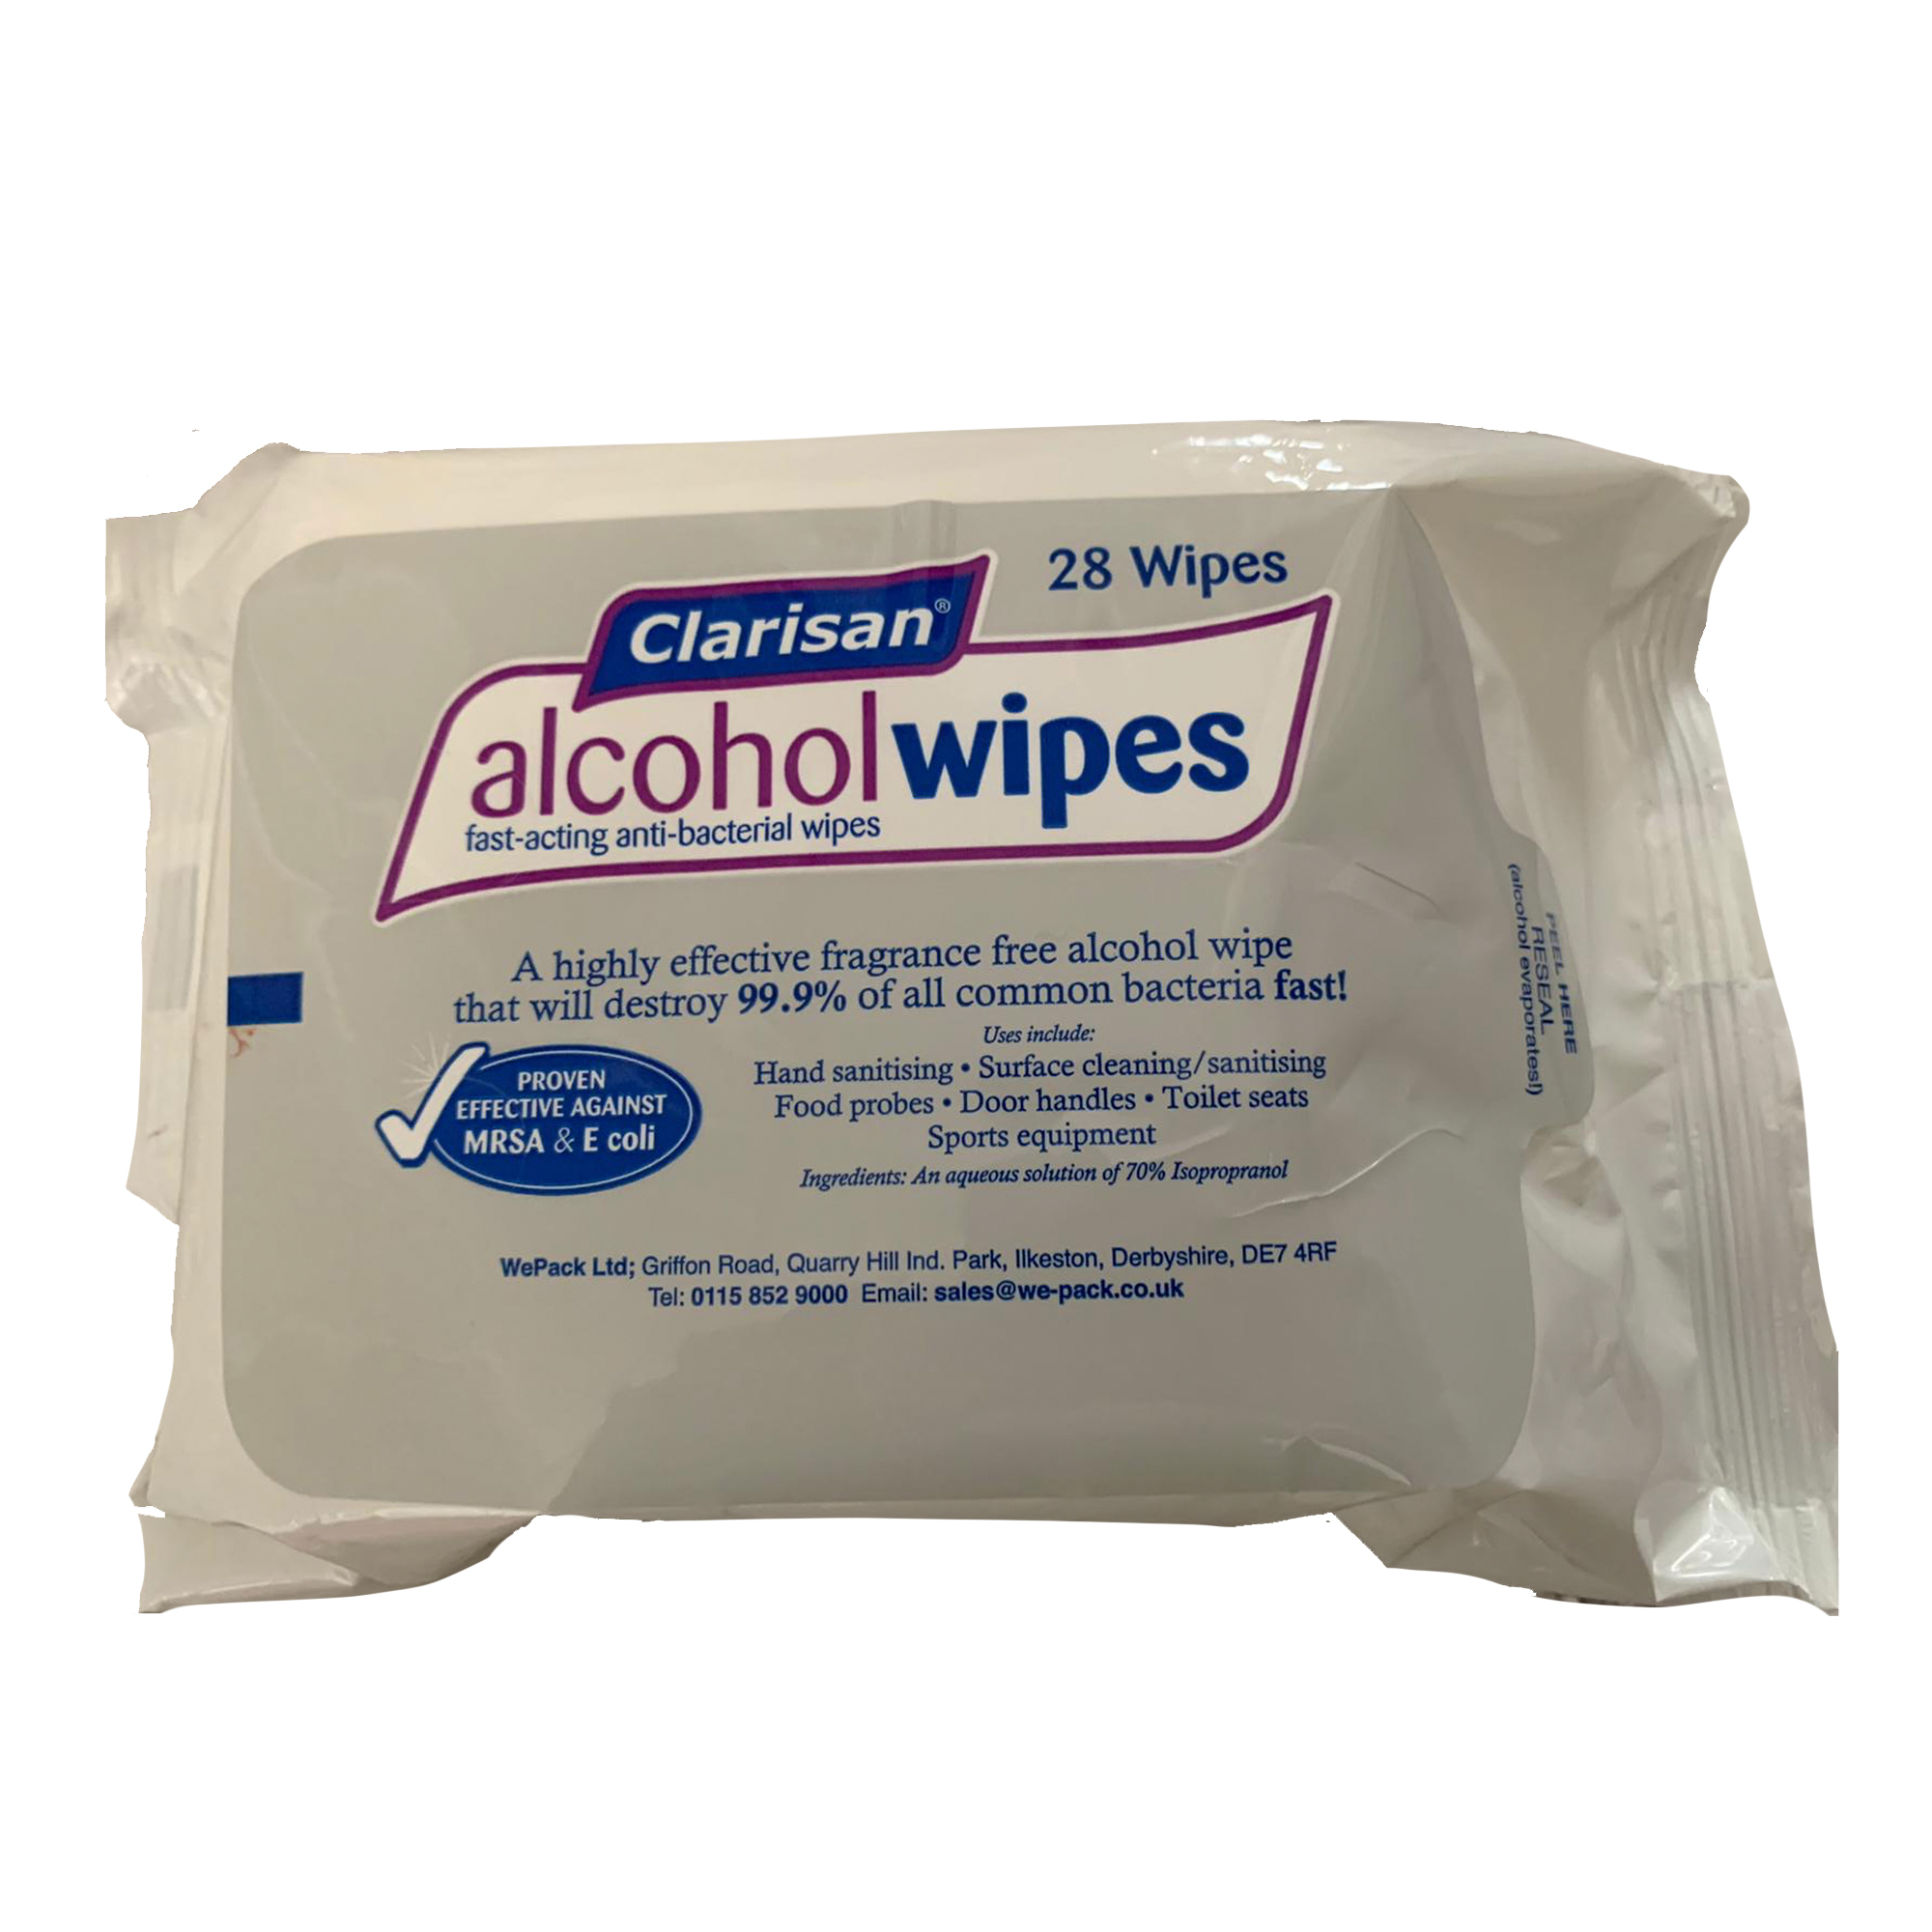 Clarisan Alcohol Wipes 28 Wipes (70% Isopropyl Alcohol) - PPE